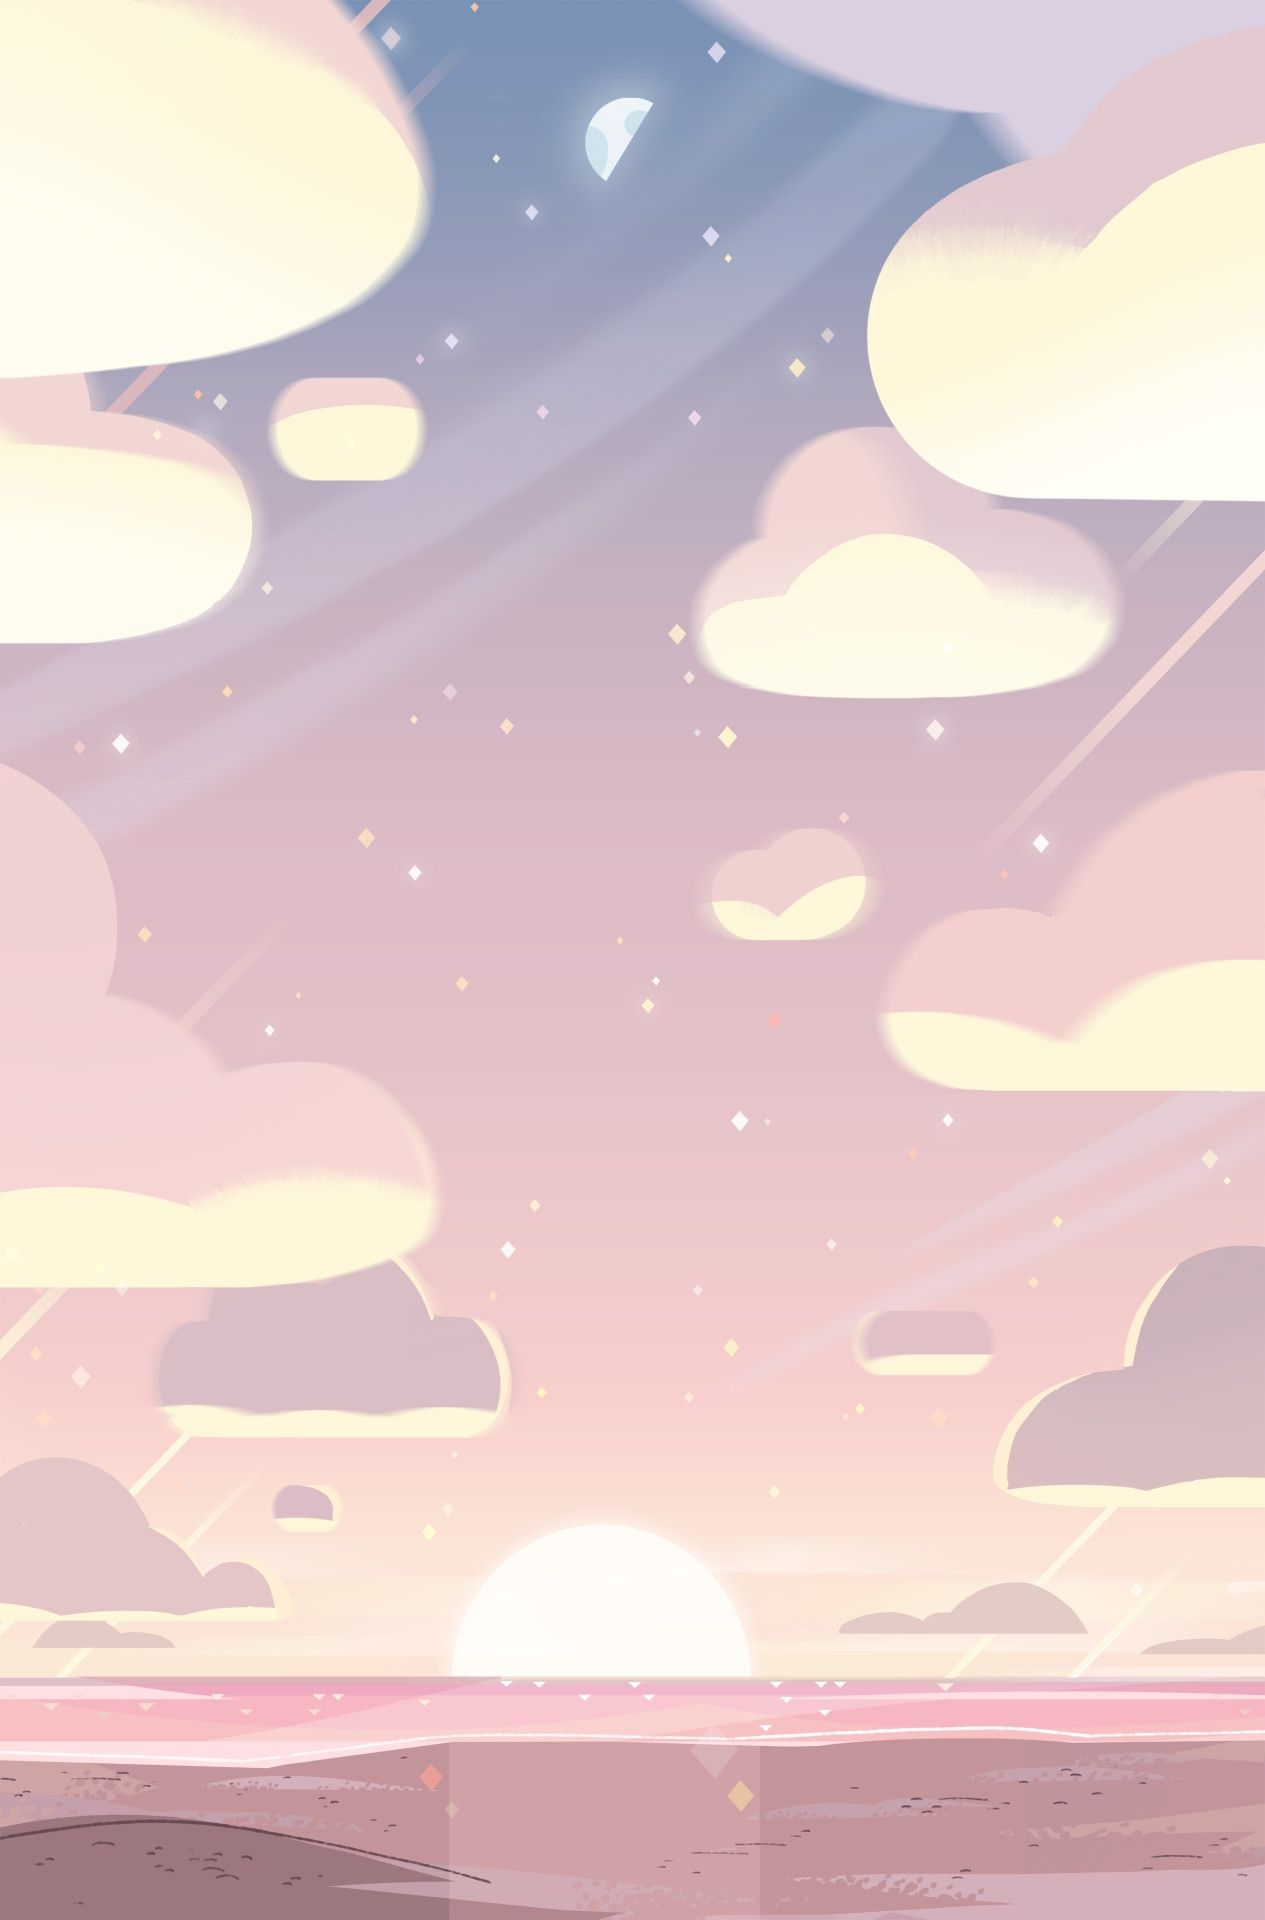 Steven Universe Iphone Wallpaper 75 Images With Steven Universe Wallpapers Iphone In 2020 Steven Universe Wallpaper Steven Universe Background Steven Universe